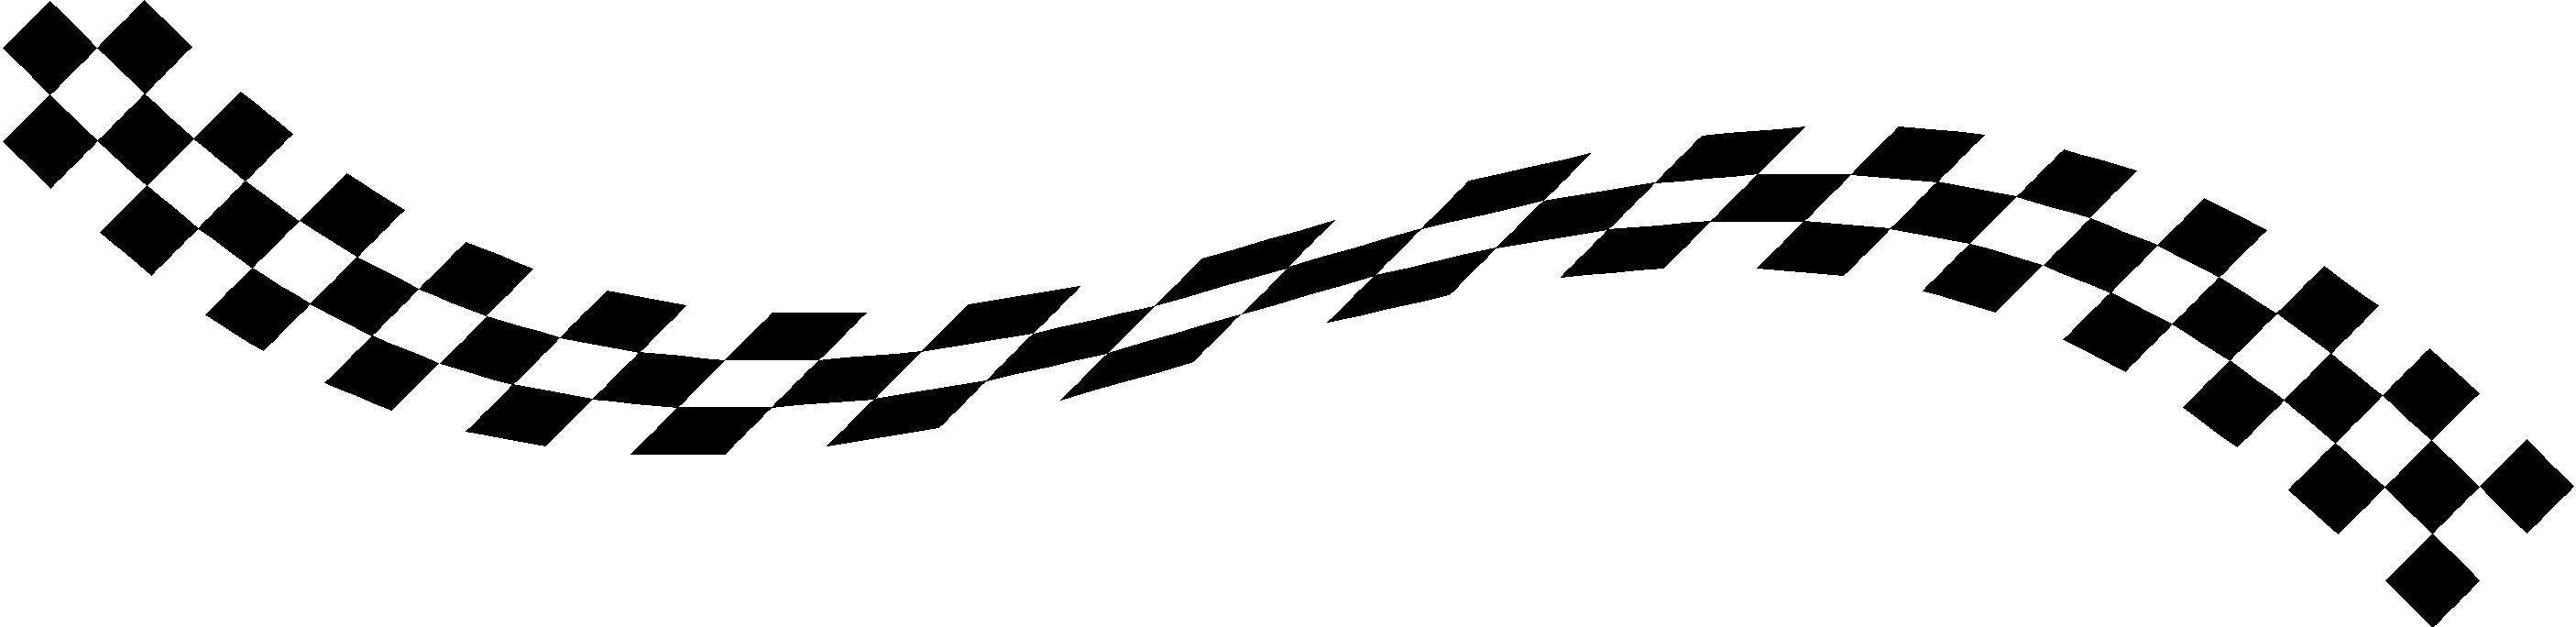 Checkered flag wall decal hd photographs